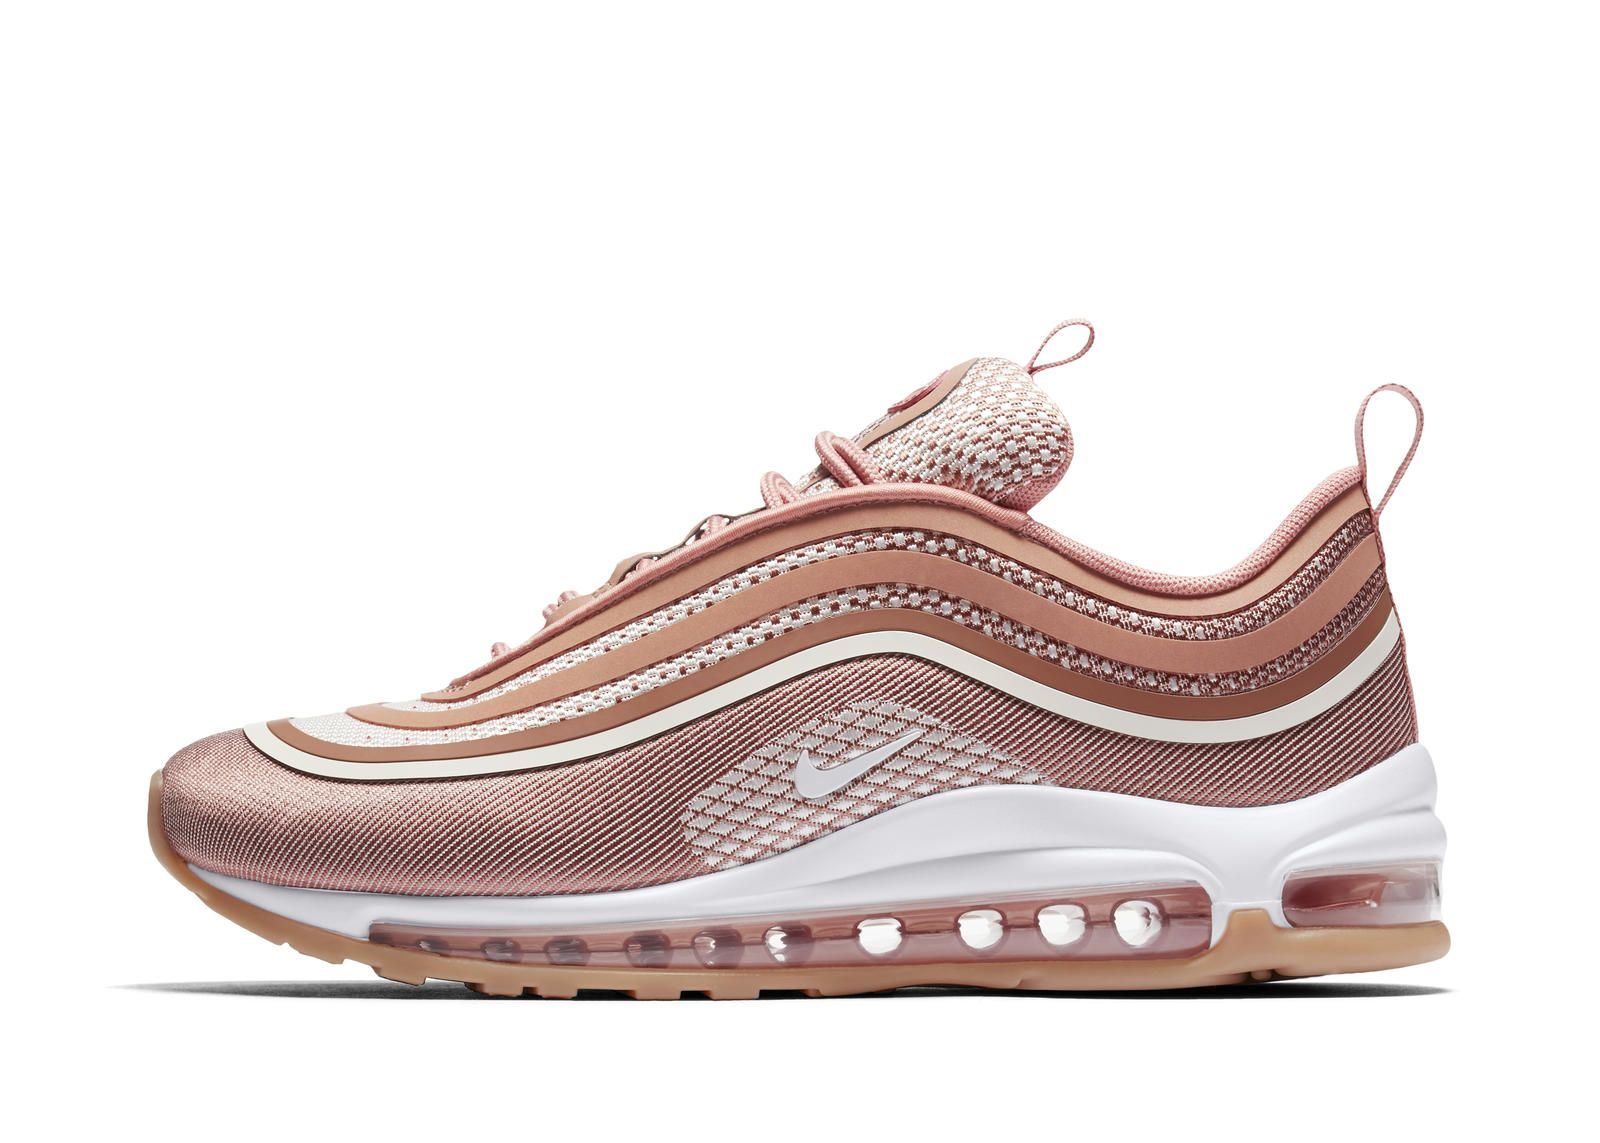 ... free shipping new fall colorways for the air max 97 nike news 505d8  dfe6a ... 83b644062